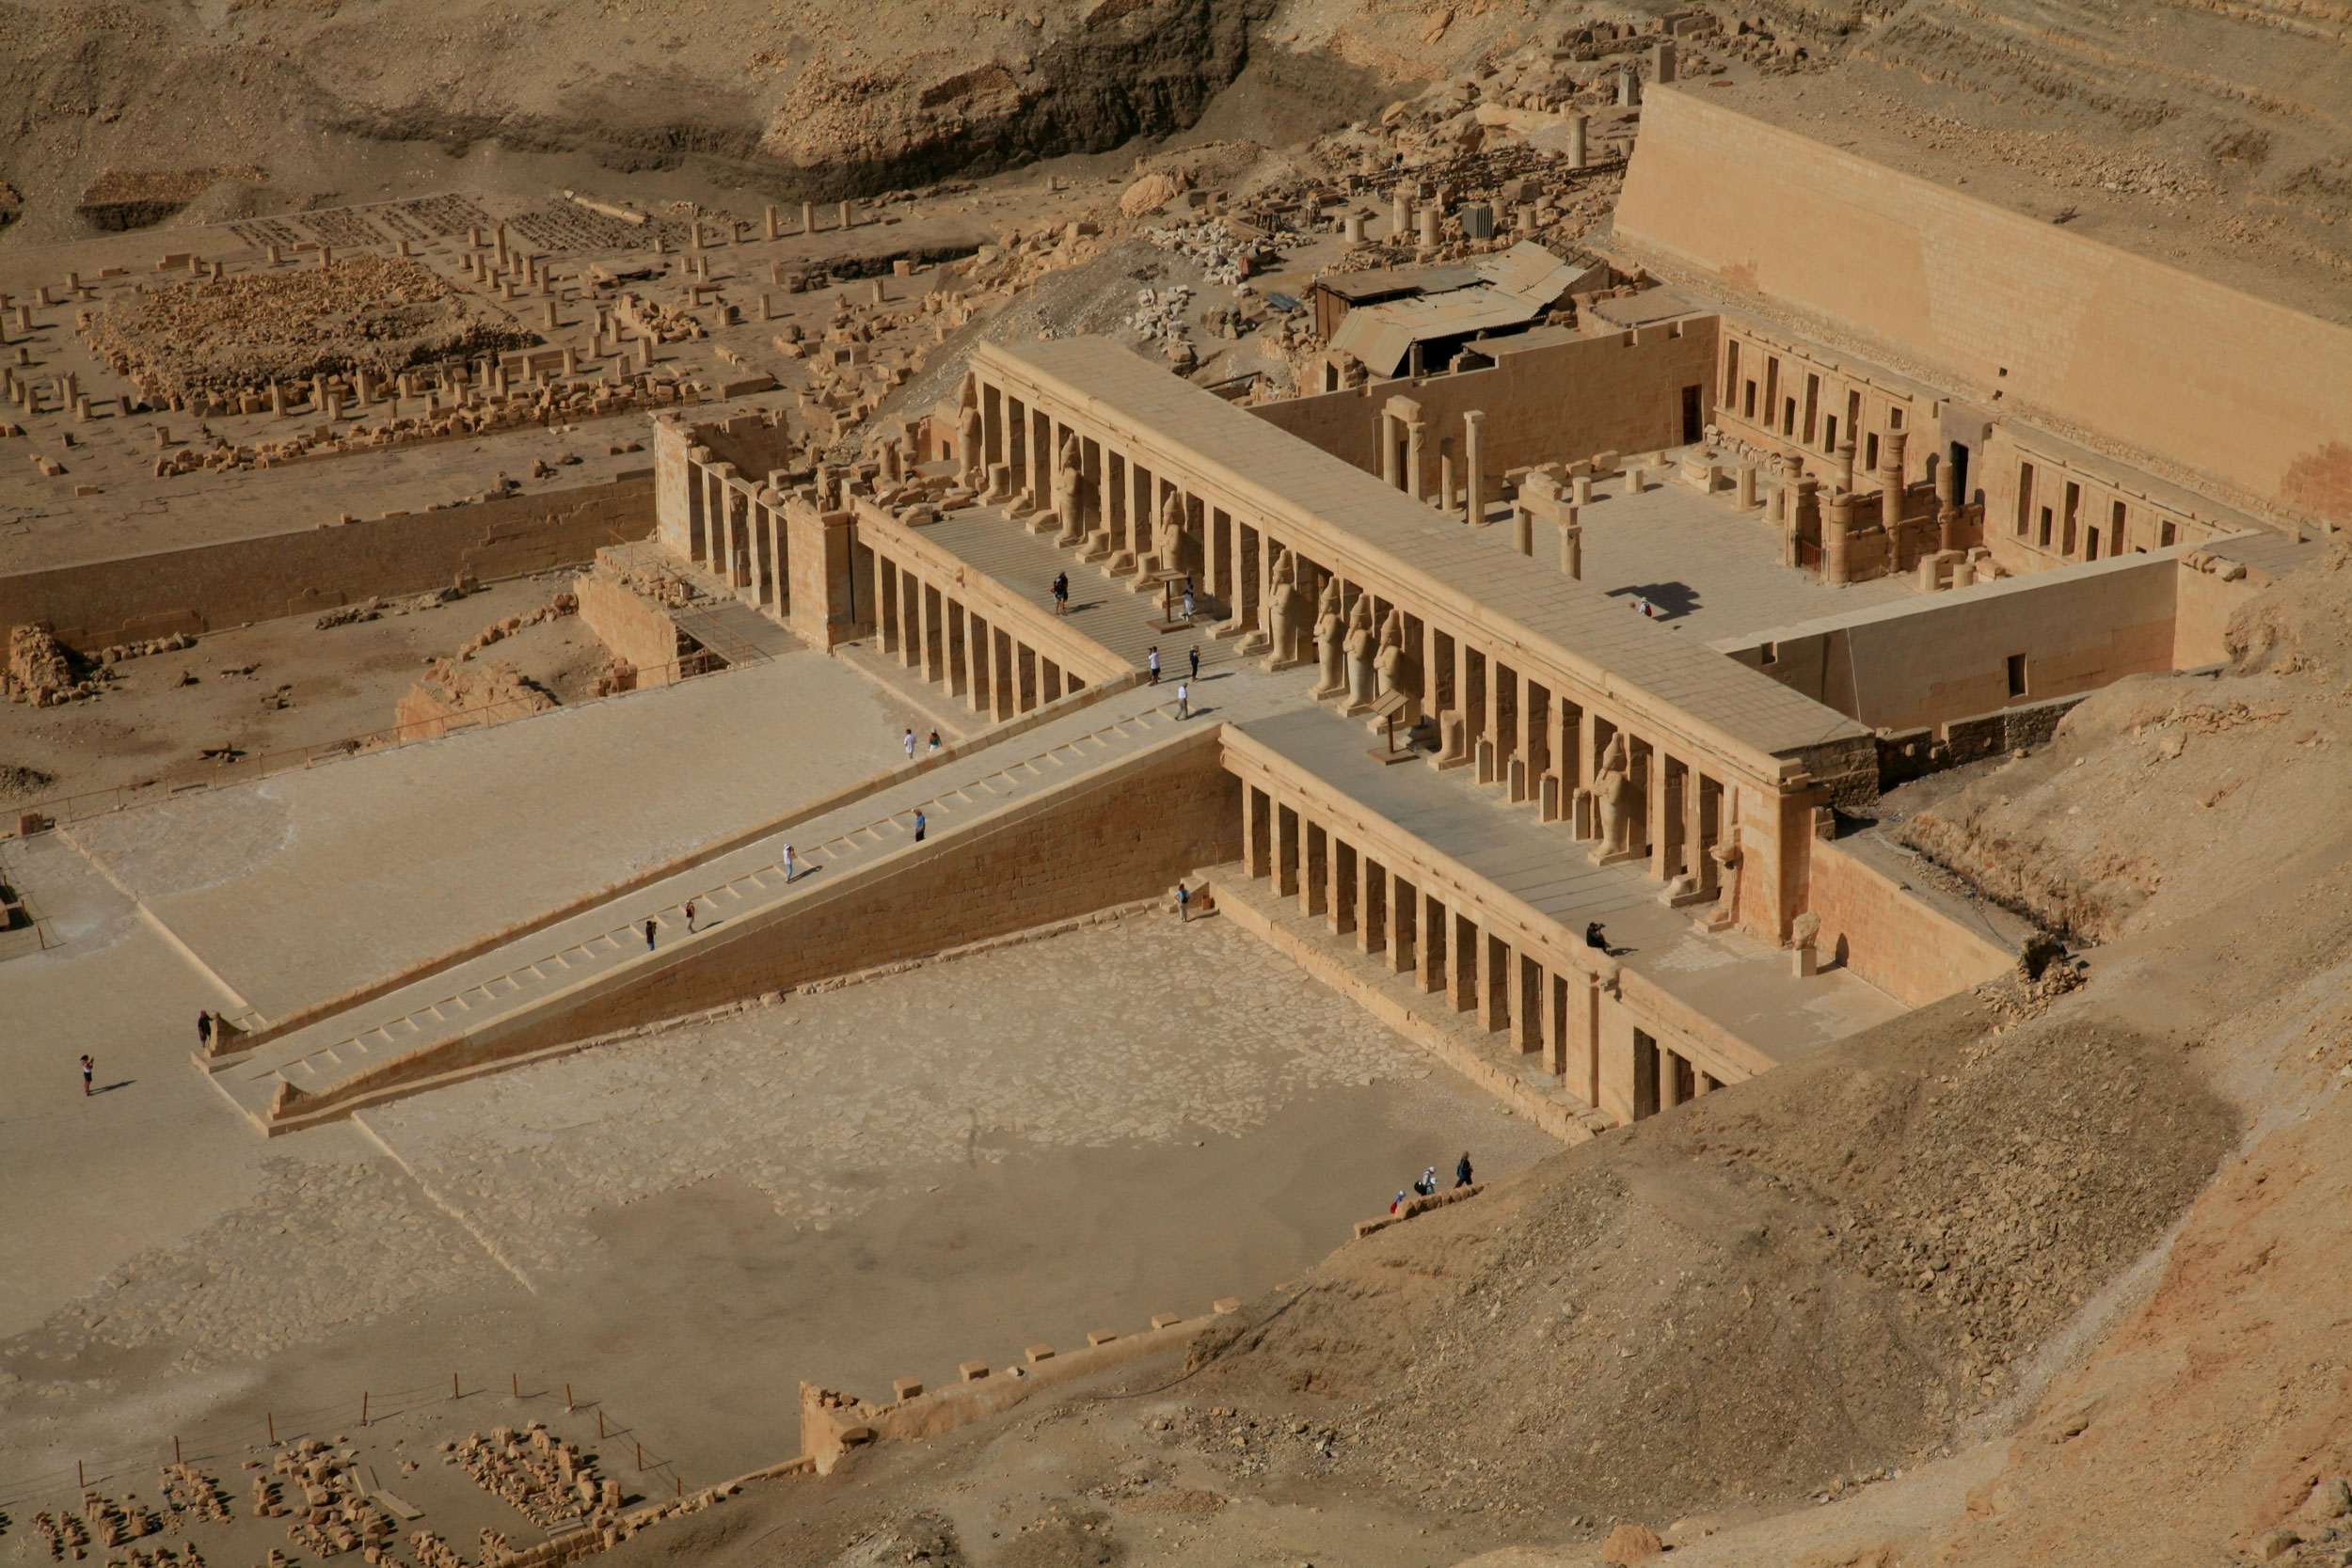 Aerial view of the Mortuary Temple of Hatshepsut, Egypt